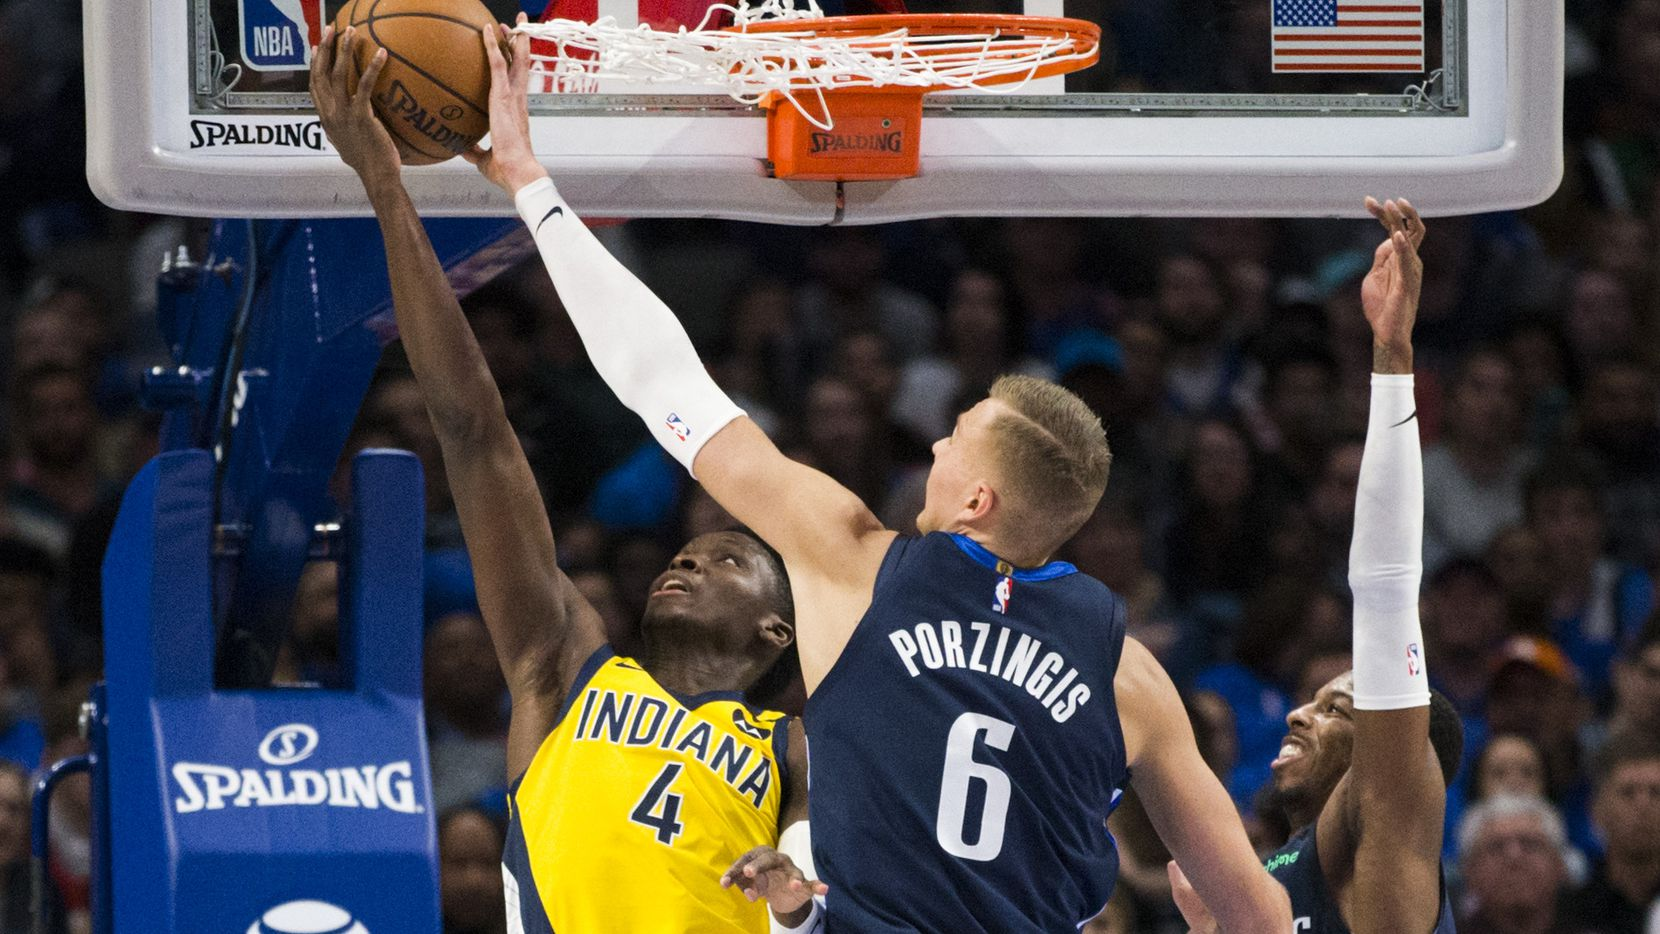 Dallas Mavericks forward Kristaps Porzingis (6) blocks a shot by Indiana Pacers guard Victor Oladipo (4) during the fourth quarter of an NBA game between the Indiana Pacers and the Dallas Mavericks on Sunday, March 8, 2020 at American Airlines Center in Dallas.